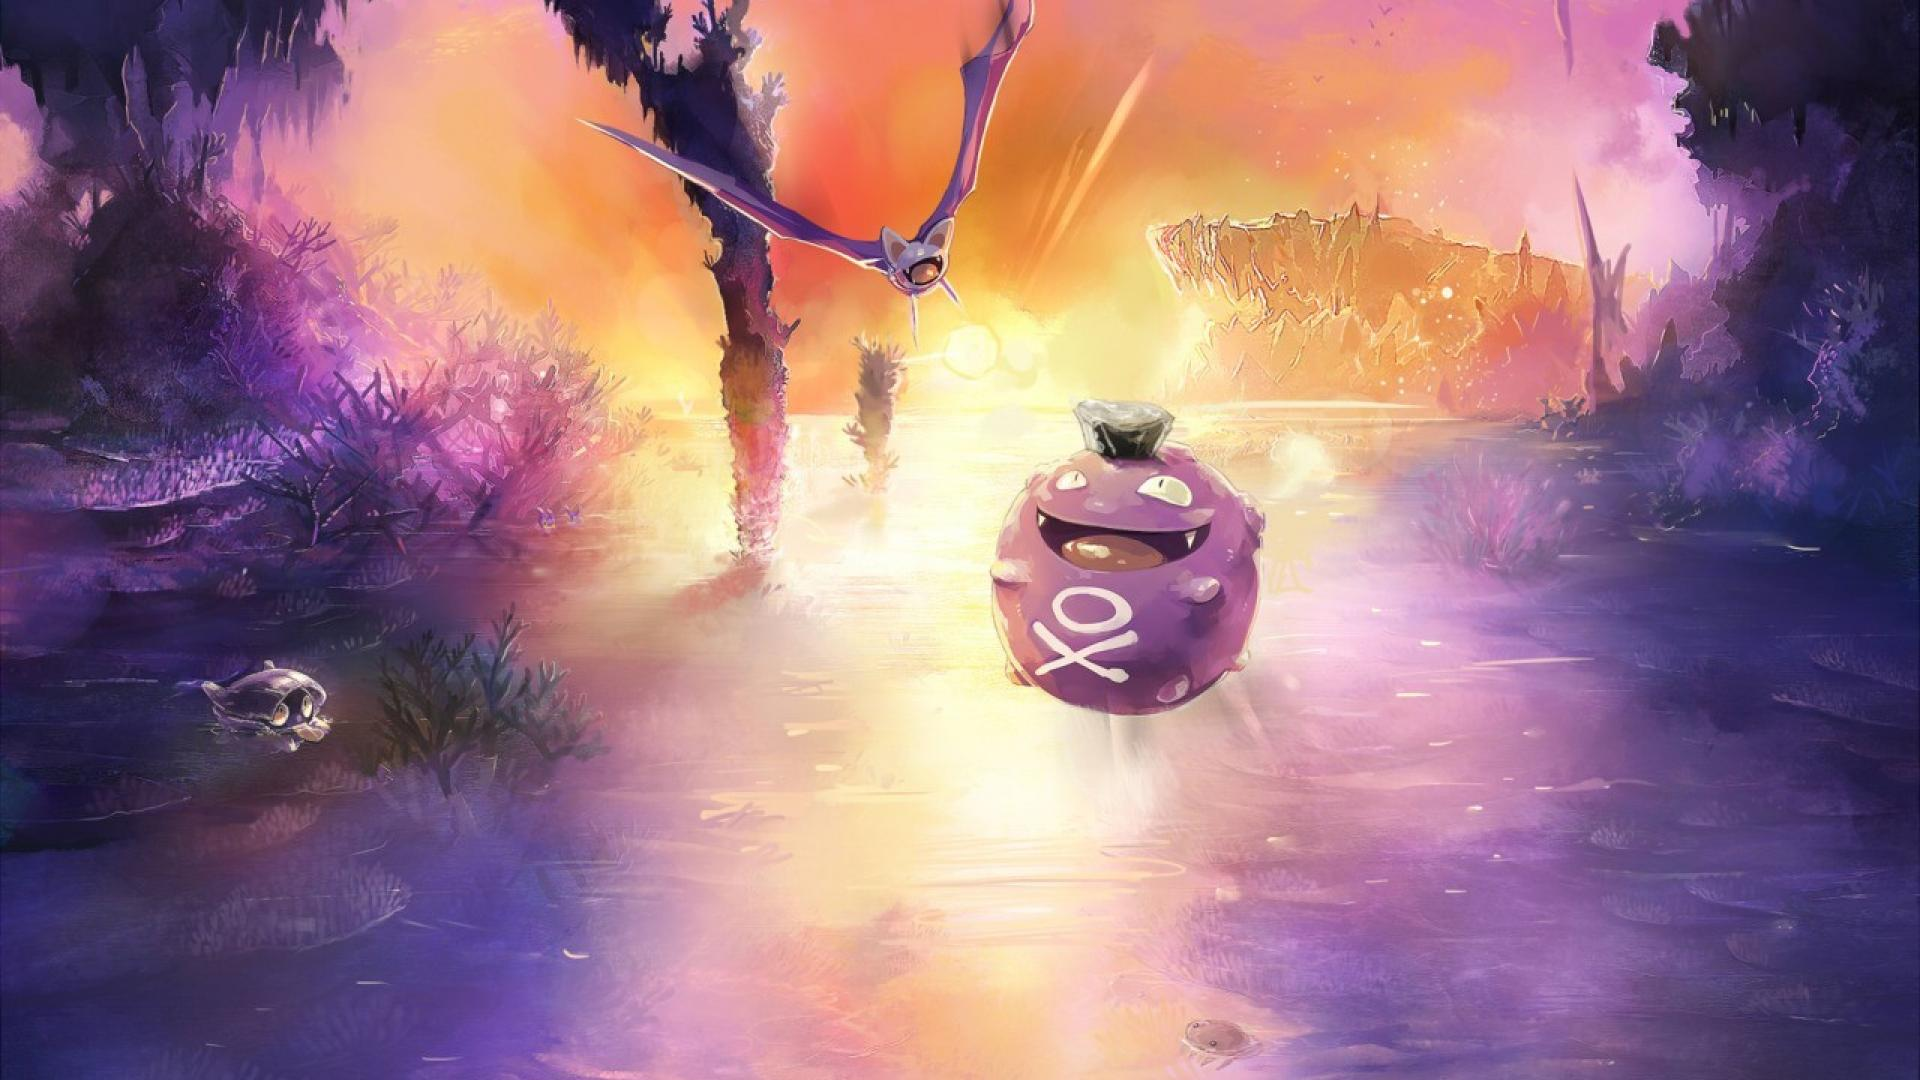 Pokemon landscapes koffing zubat wallpapers